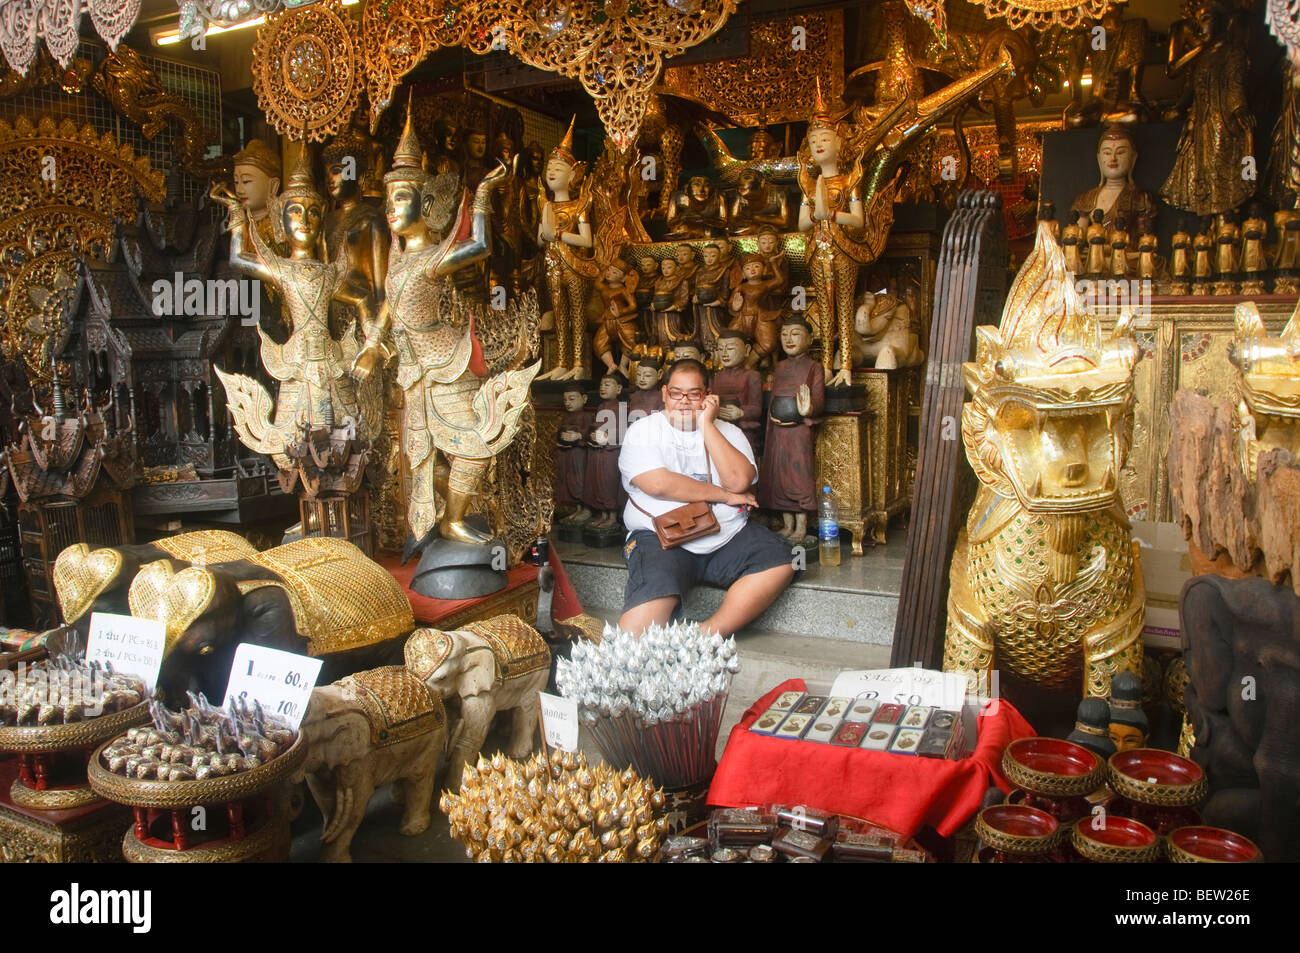 merchant sitting amongst his Buddha statues at the Chatuchak Weekend Market in Bangkok Thailand - Stock Image